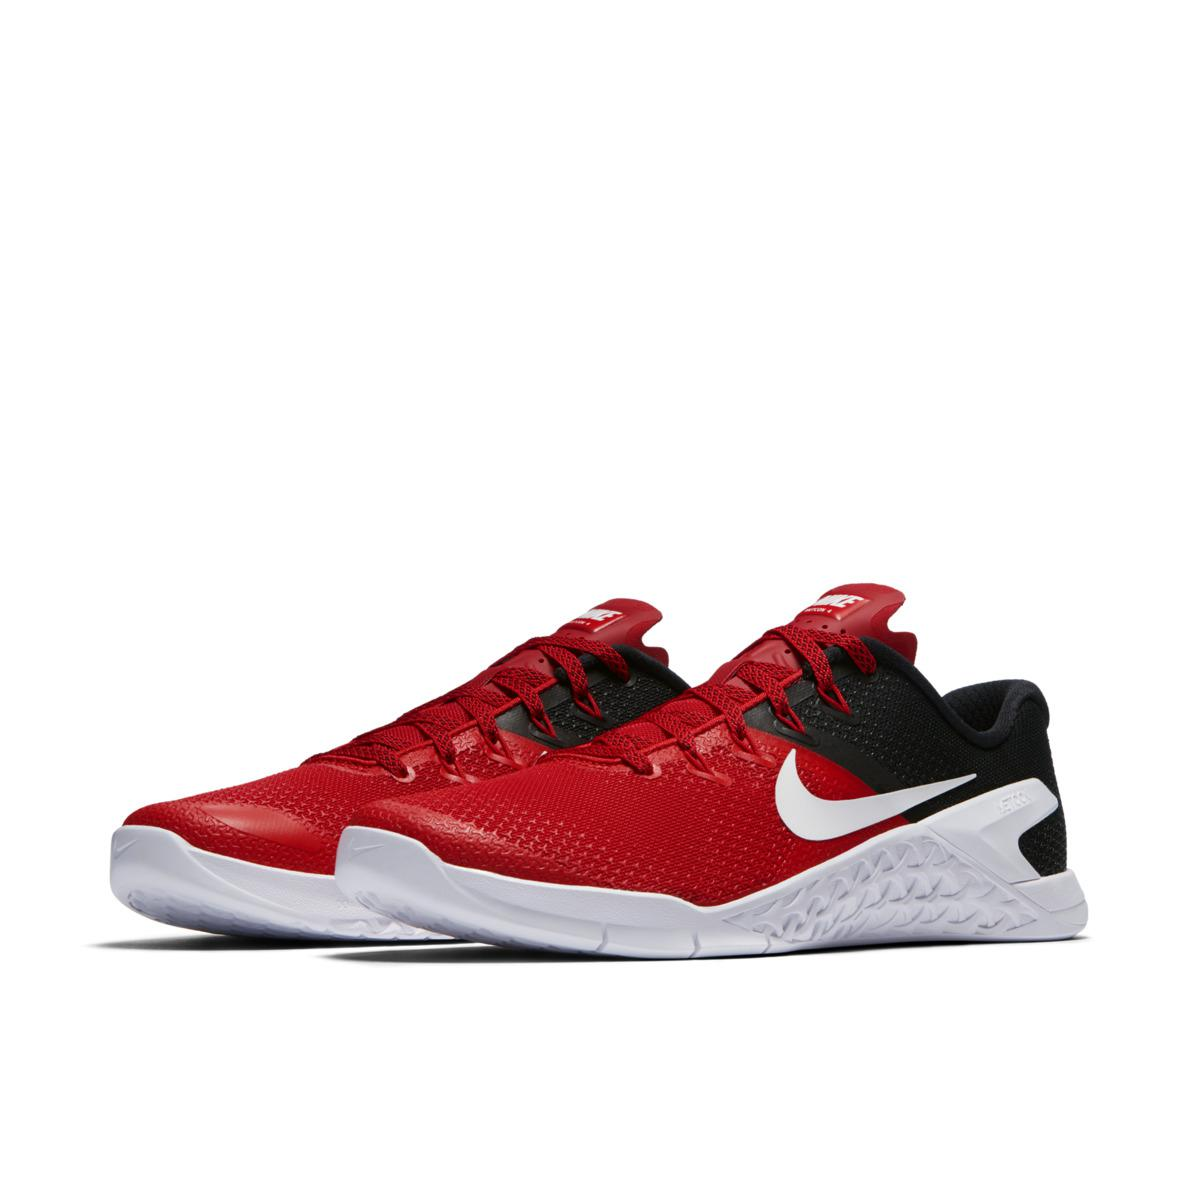 7c65b365c3e60 Nike Metcon 4 Training Shoes in Red for Men - Lyst